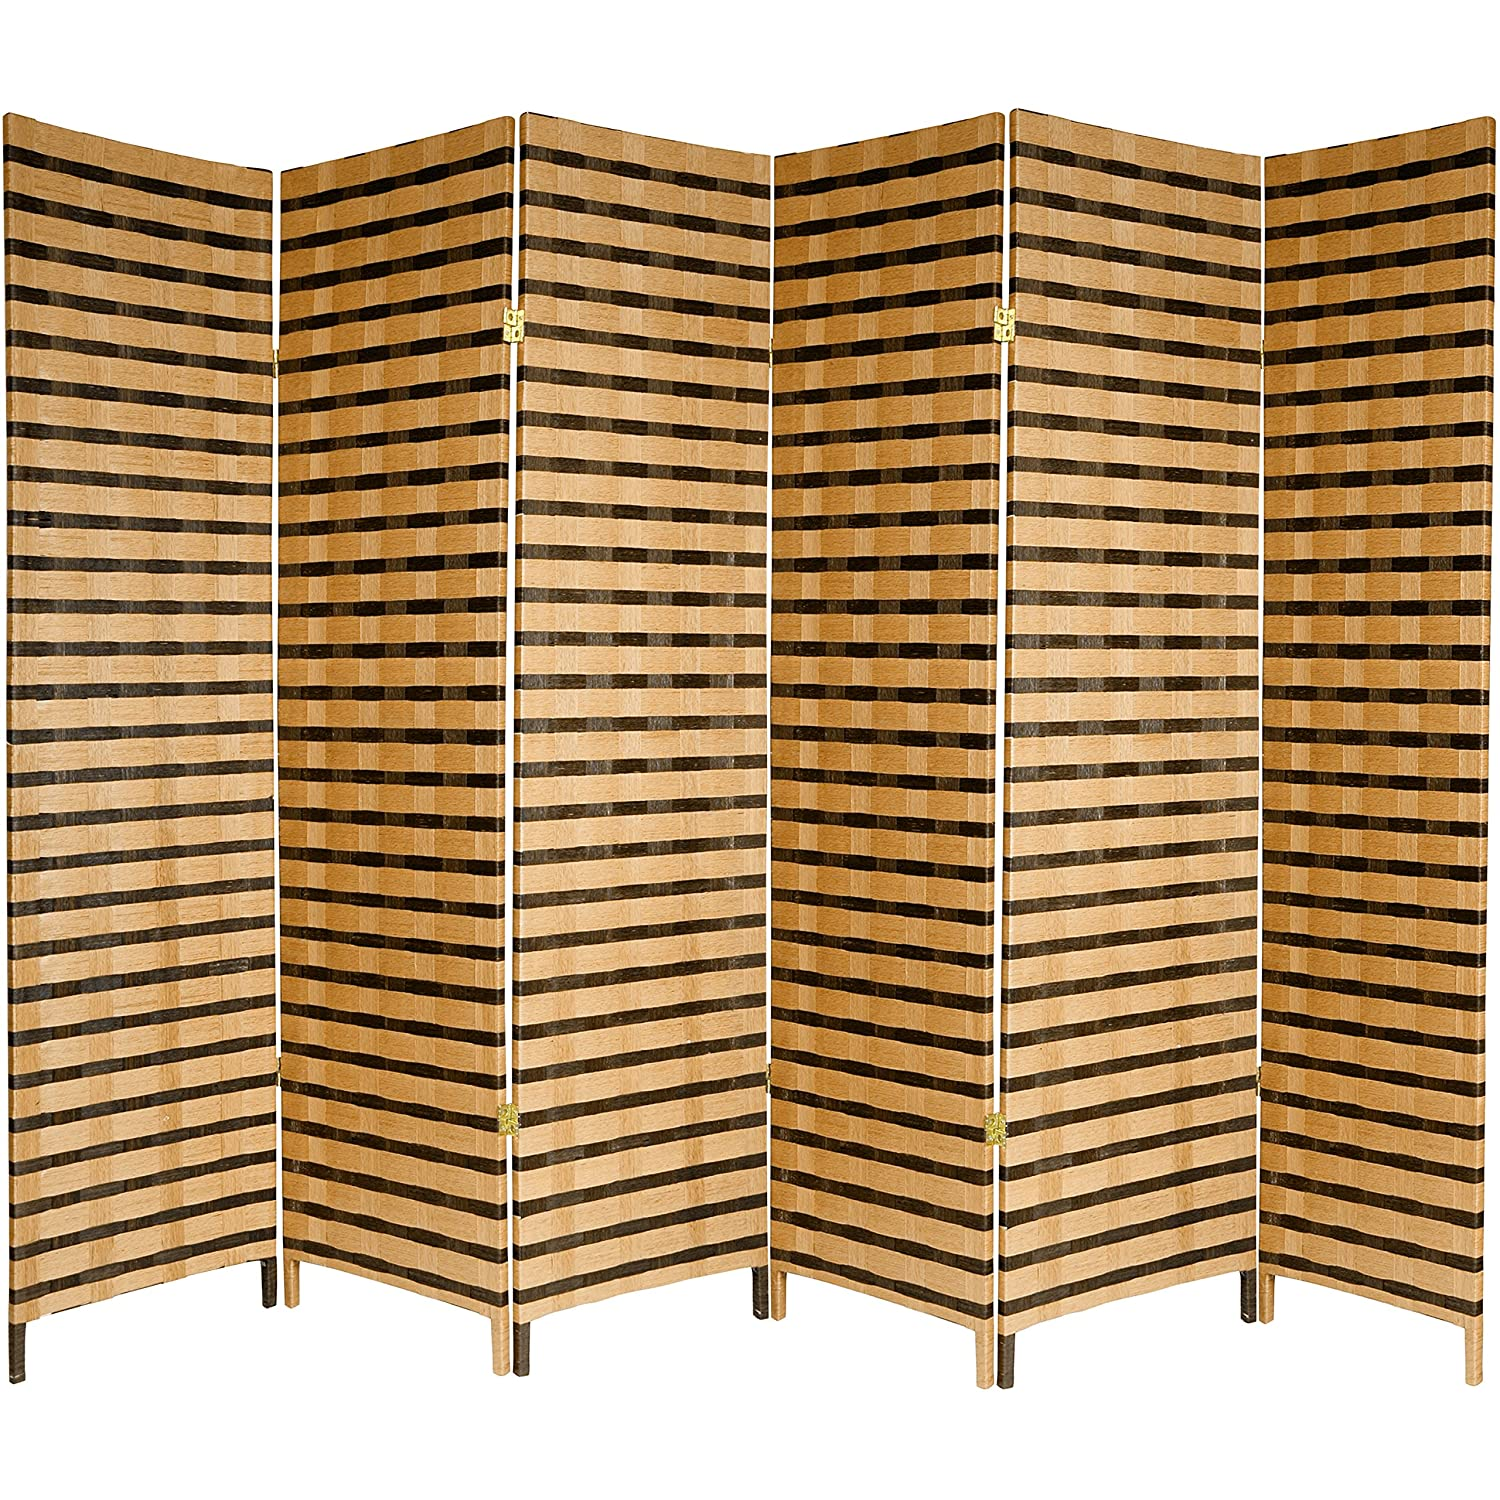 Oriental Furniture Good Simple Extra Wide Large Size Room Divider, 6-Feet Rattan Style Two Tone Woven Fiber Folding Screen Partition, 6 Panel JH09-128-6P